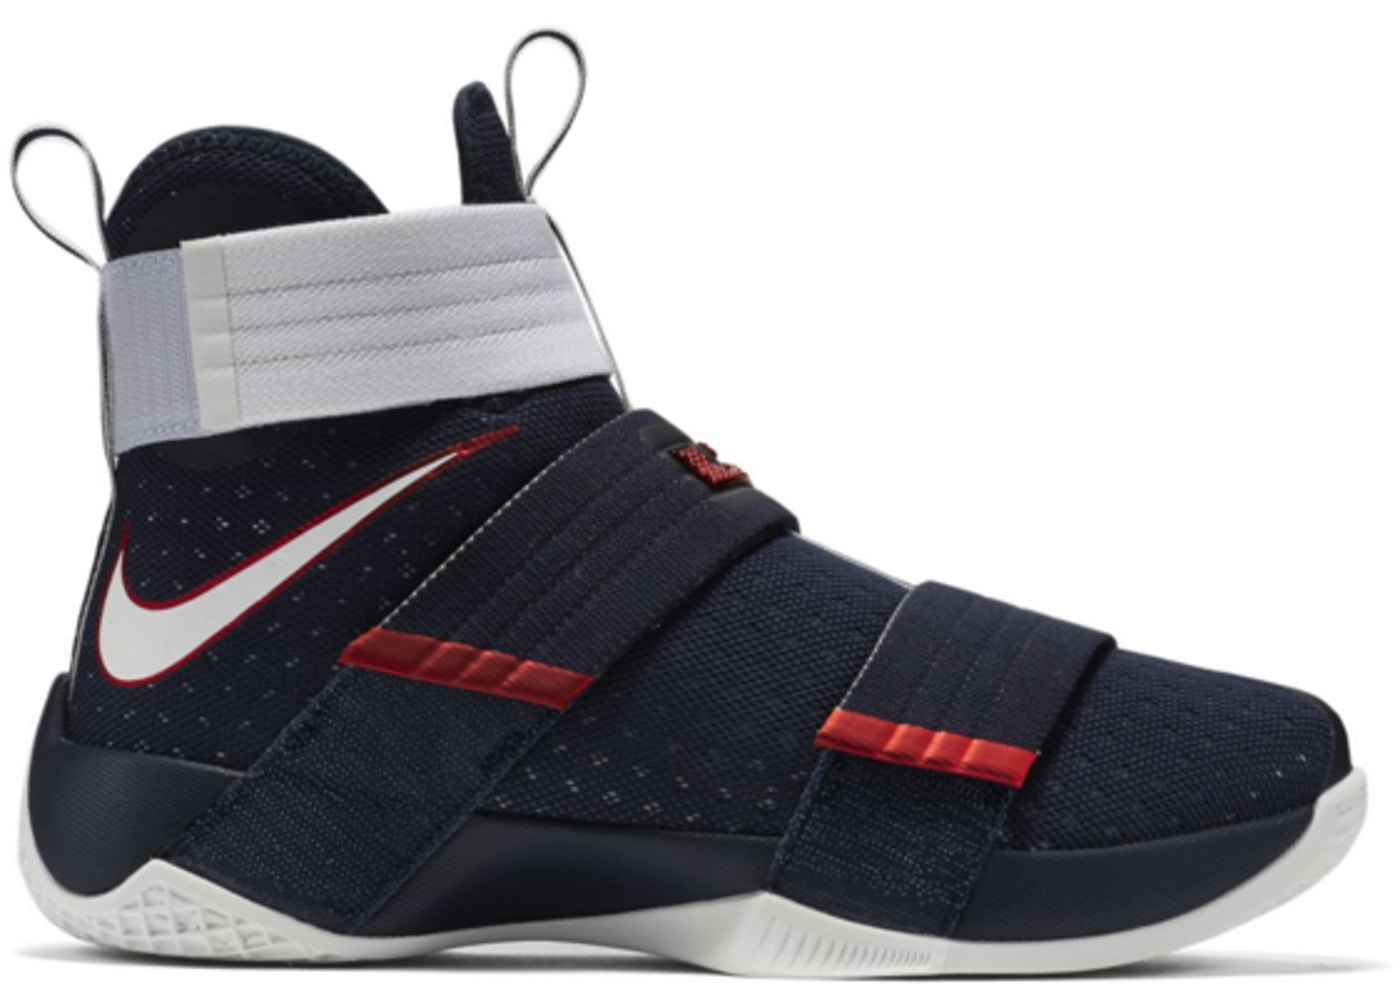 meet cf90e d3dea LeBron Zoom Soldier 10 USA - 844379-416